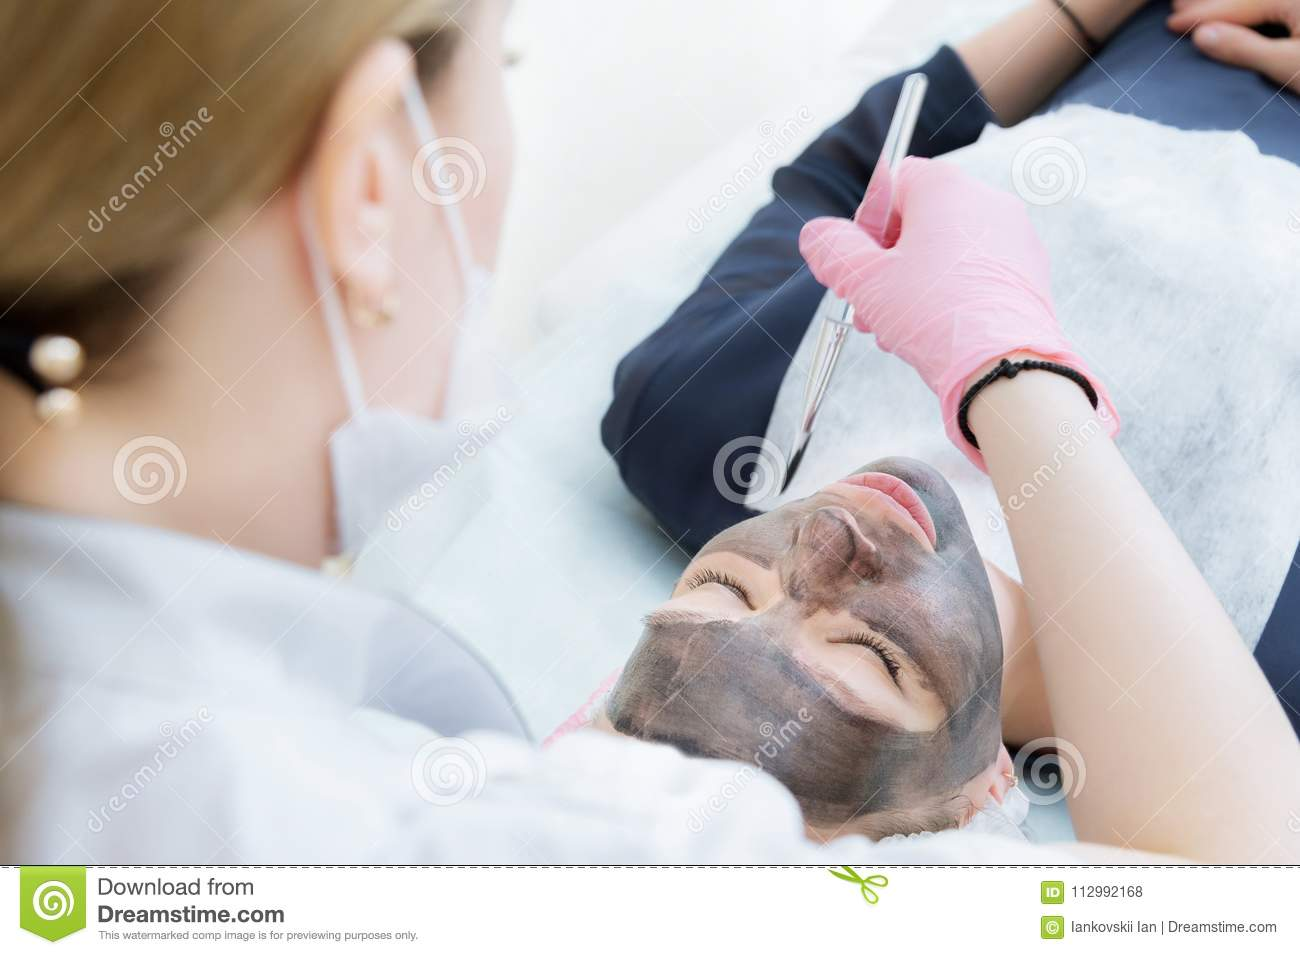 The cosmetologist in pink gloves with a brush applies a carbon mask for peeling on the face of a young girl in a